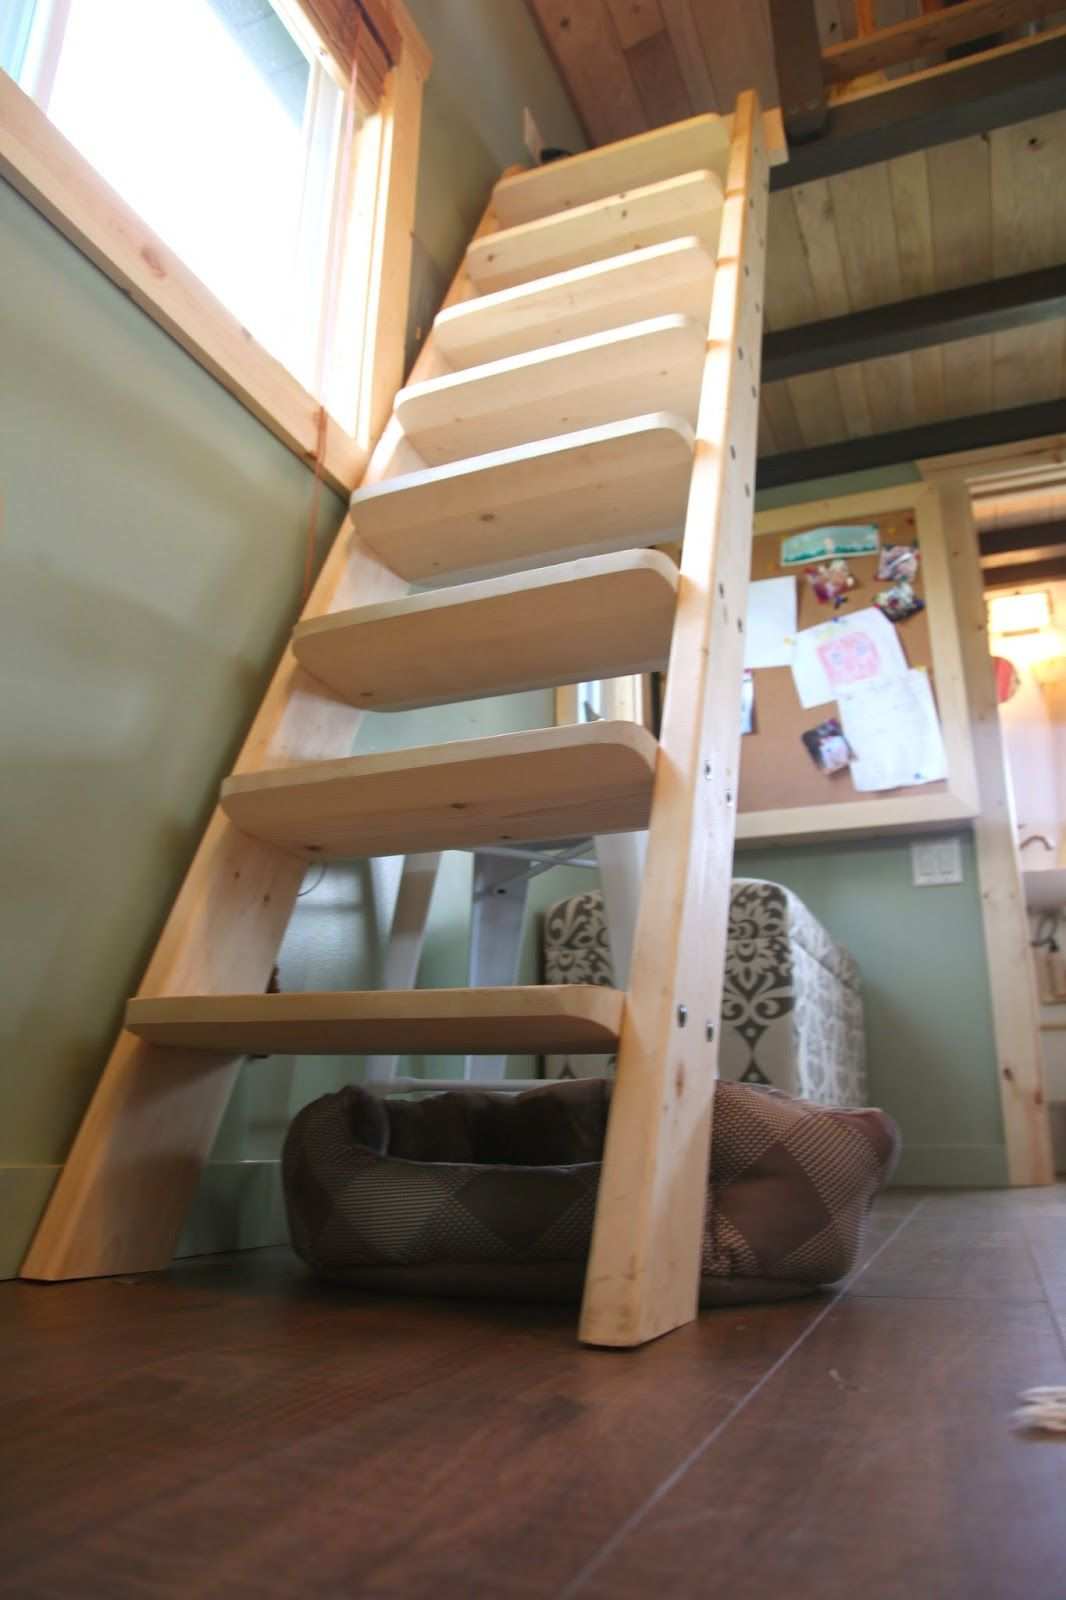 9 Savory Attic Storage Over Insulation Ideas In 2020 House Ladder Tiny House Stairs Tiny House Swoon